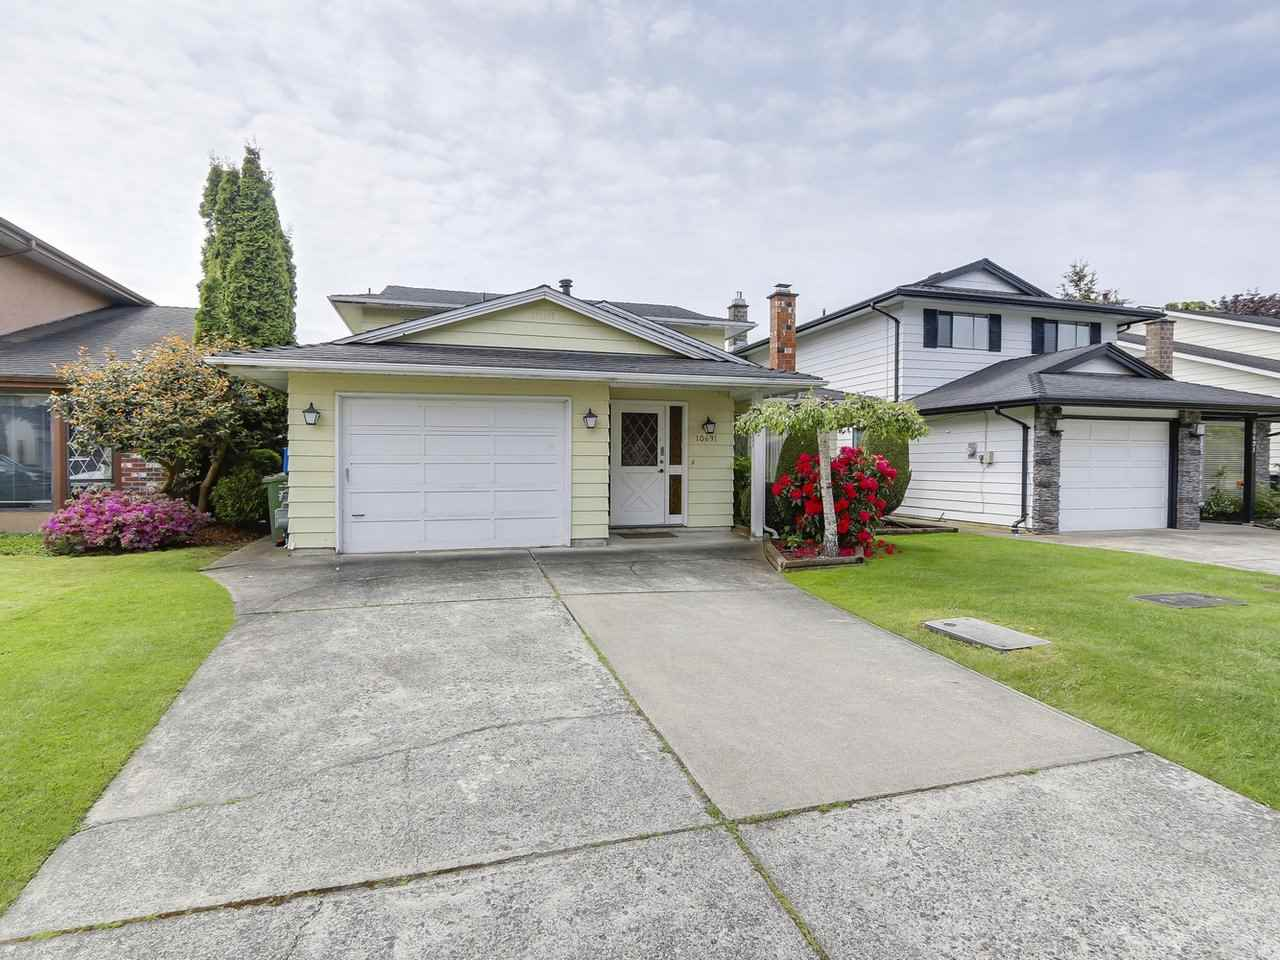 Photo 1: 10631 HOLLYBANK Drive in Richmond: Steveston North House for sale : MLS® # R2168914